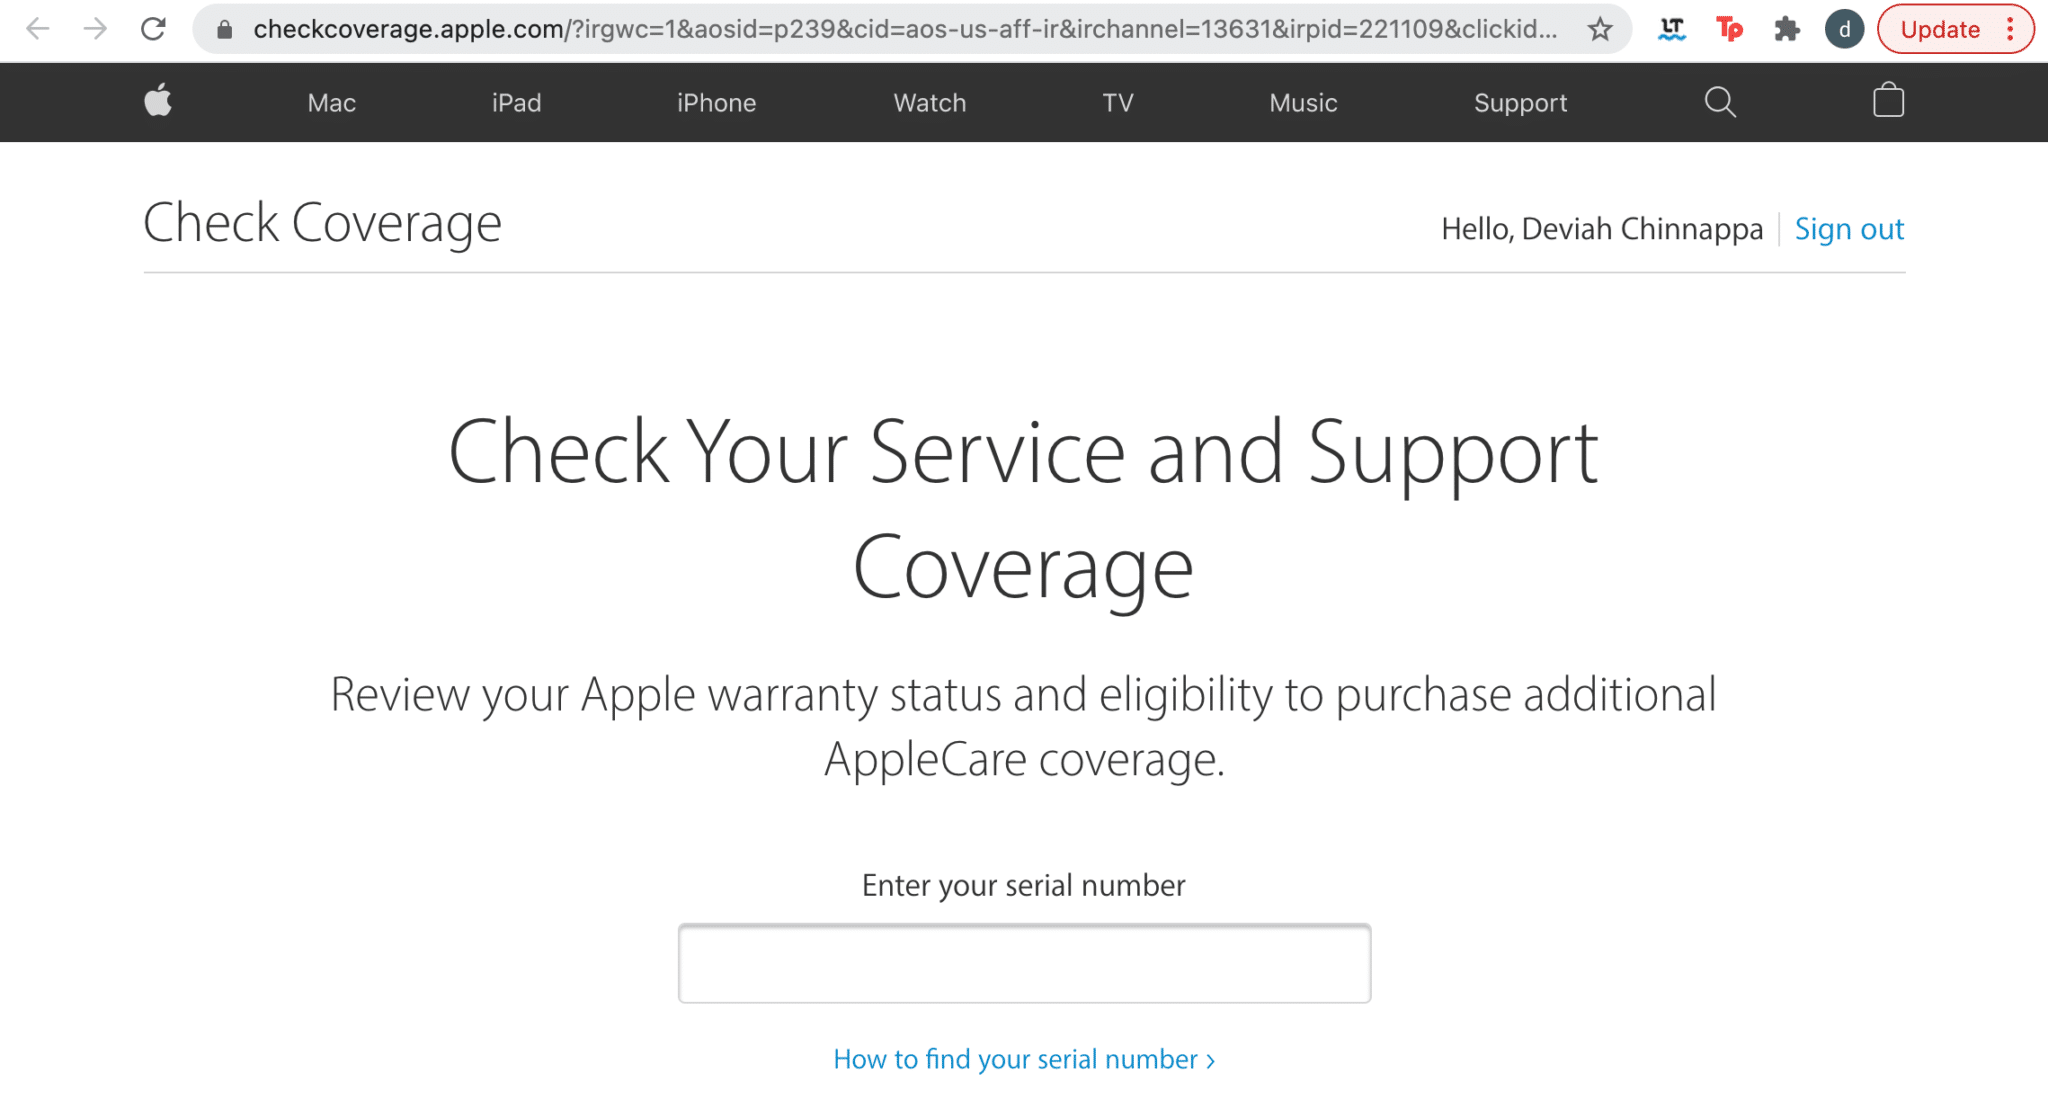 Enter the Serial number of the Apple device. Apple service and support coverage